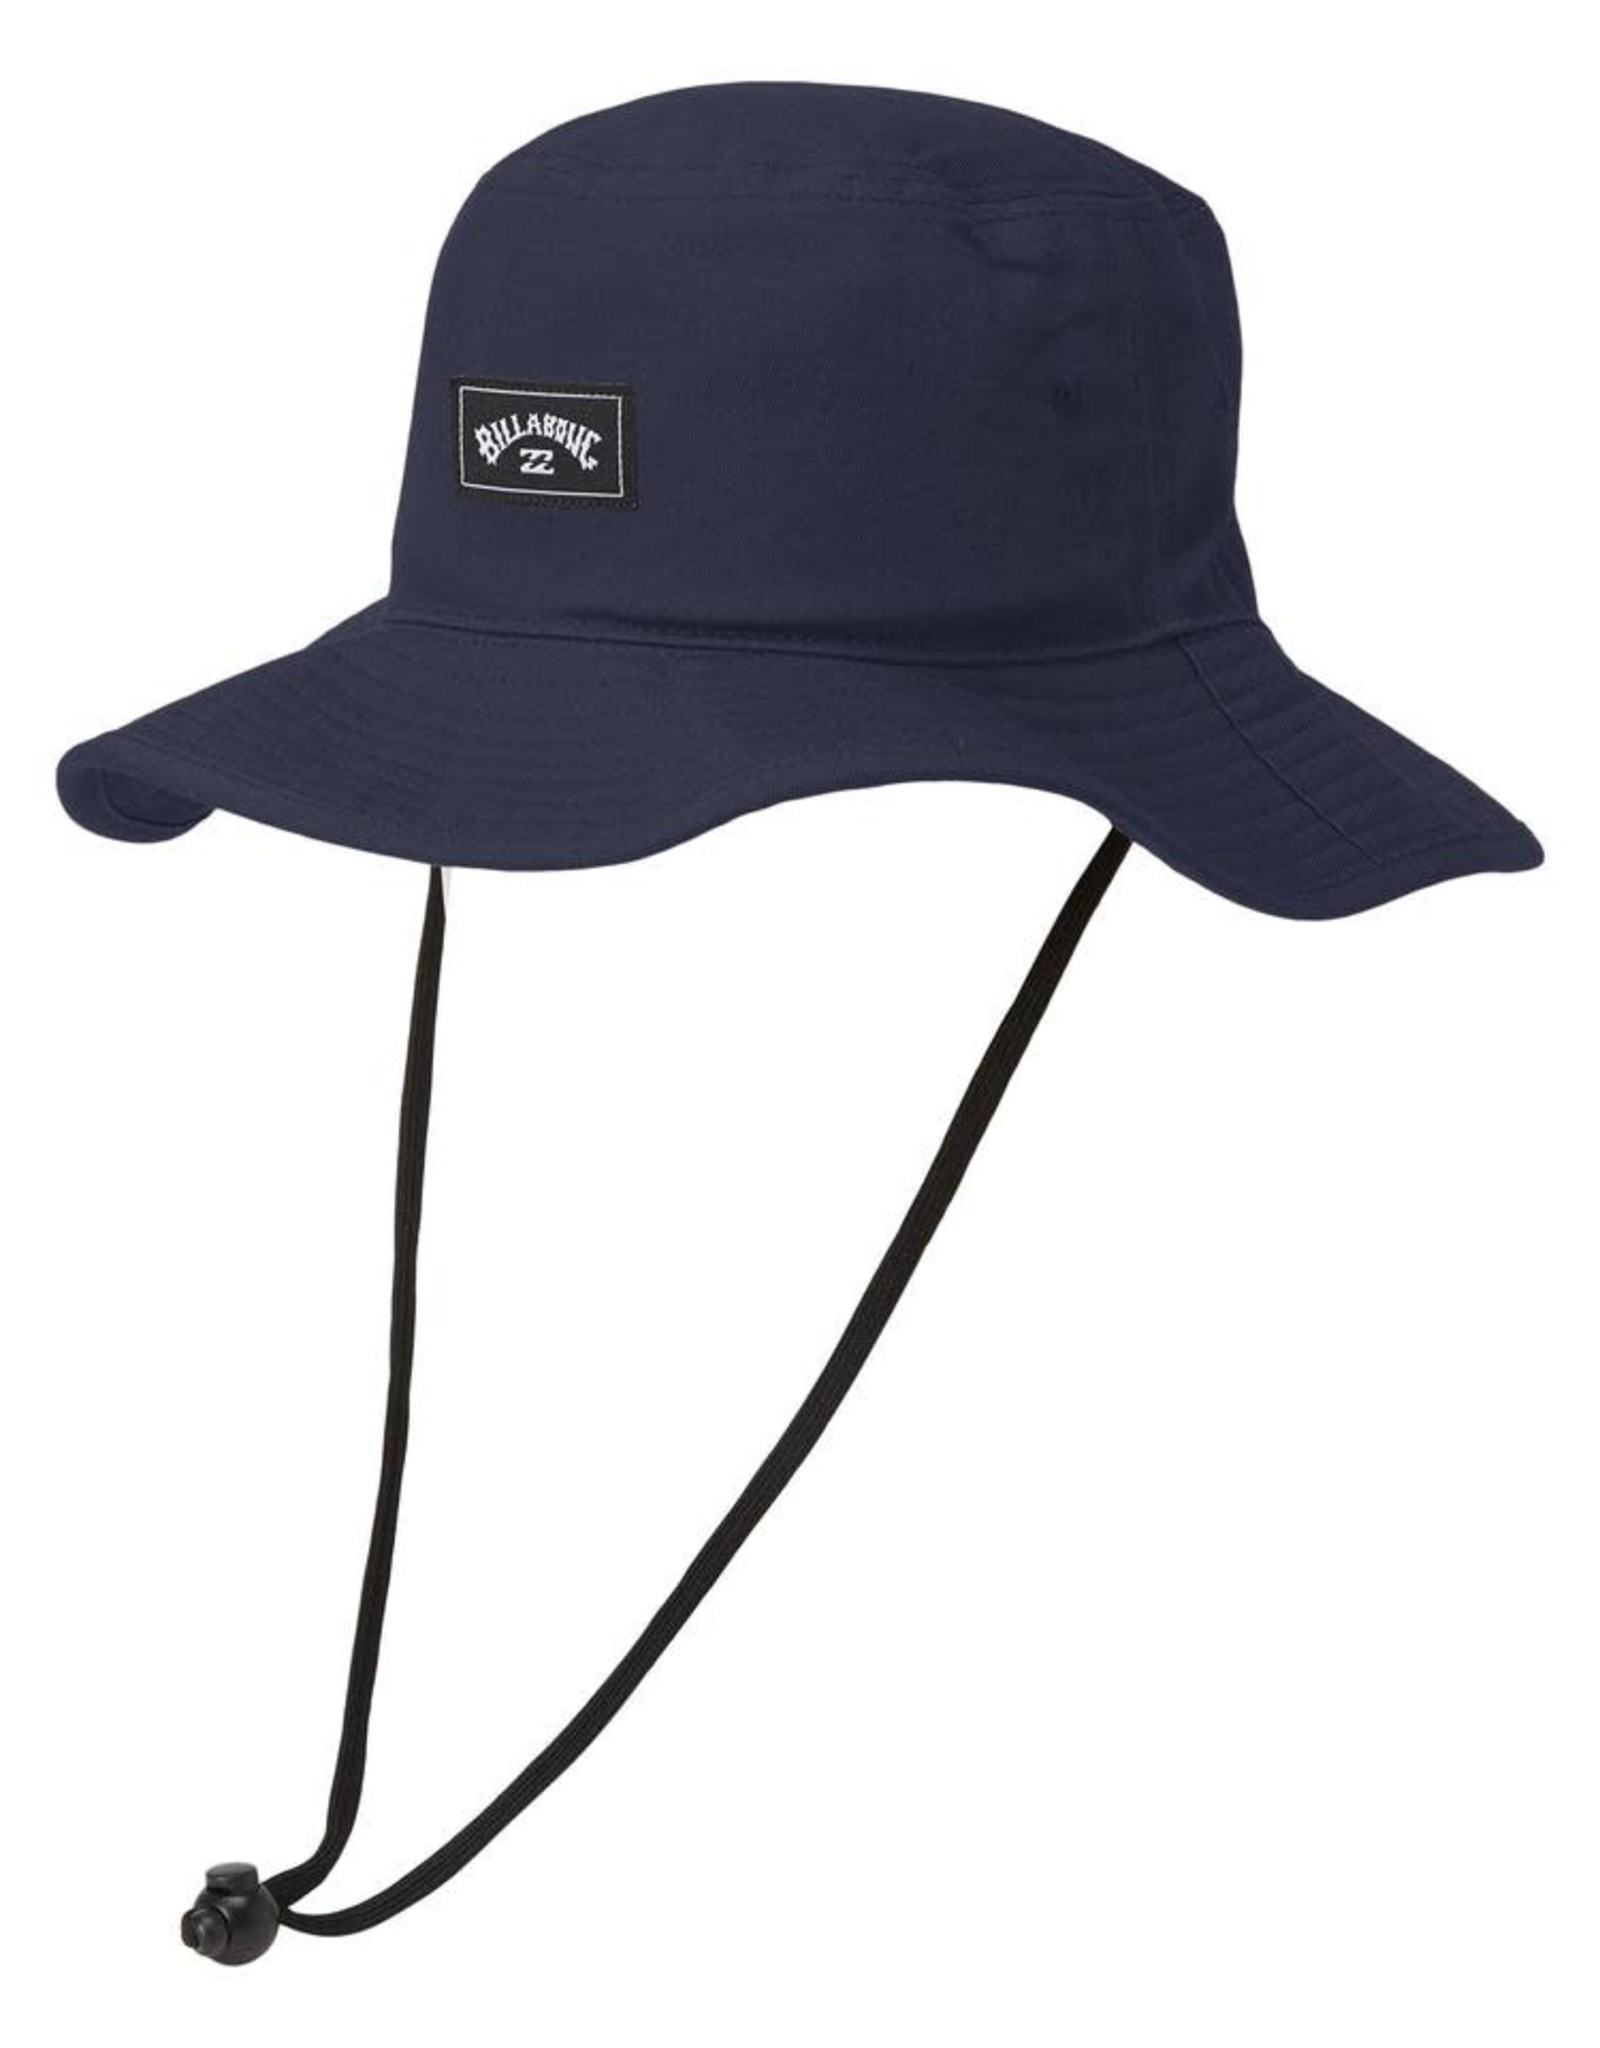 billabong Billabong - Chapeau homme big john navy